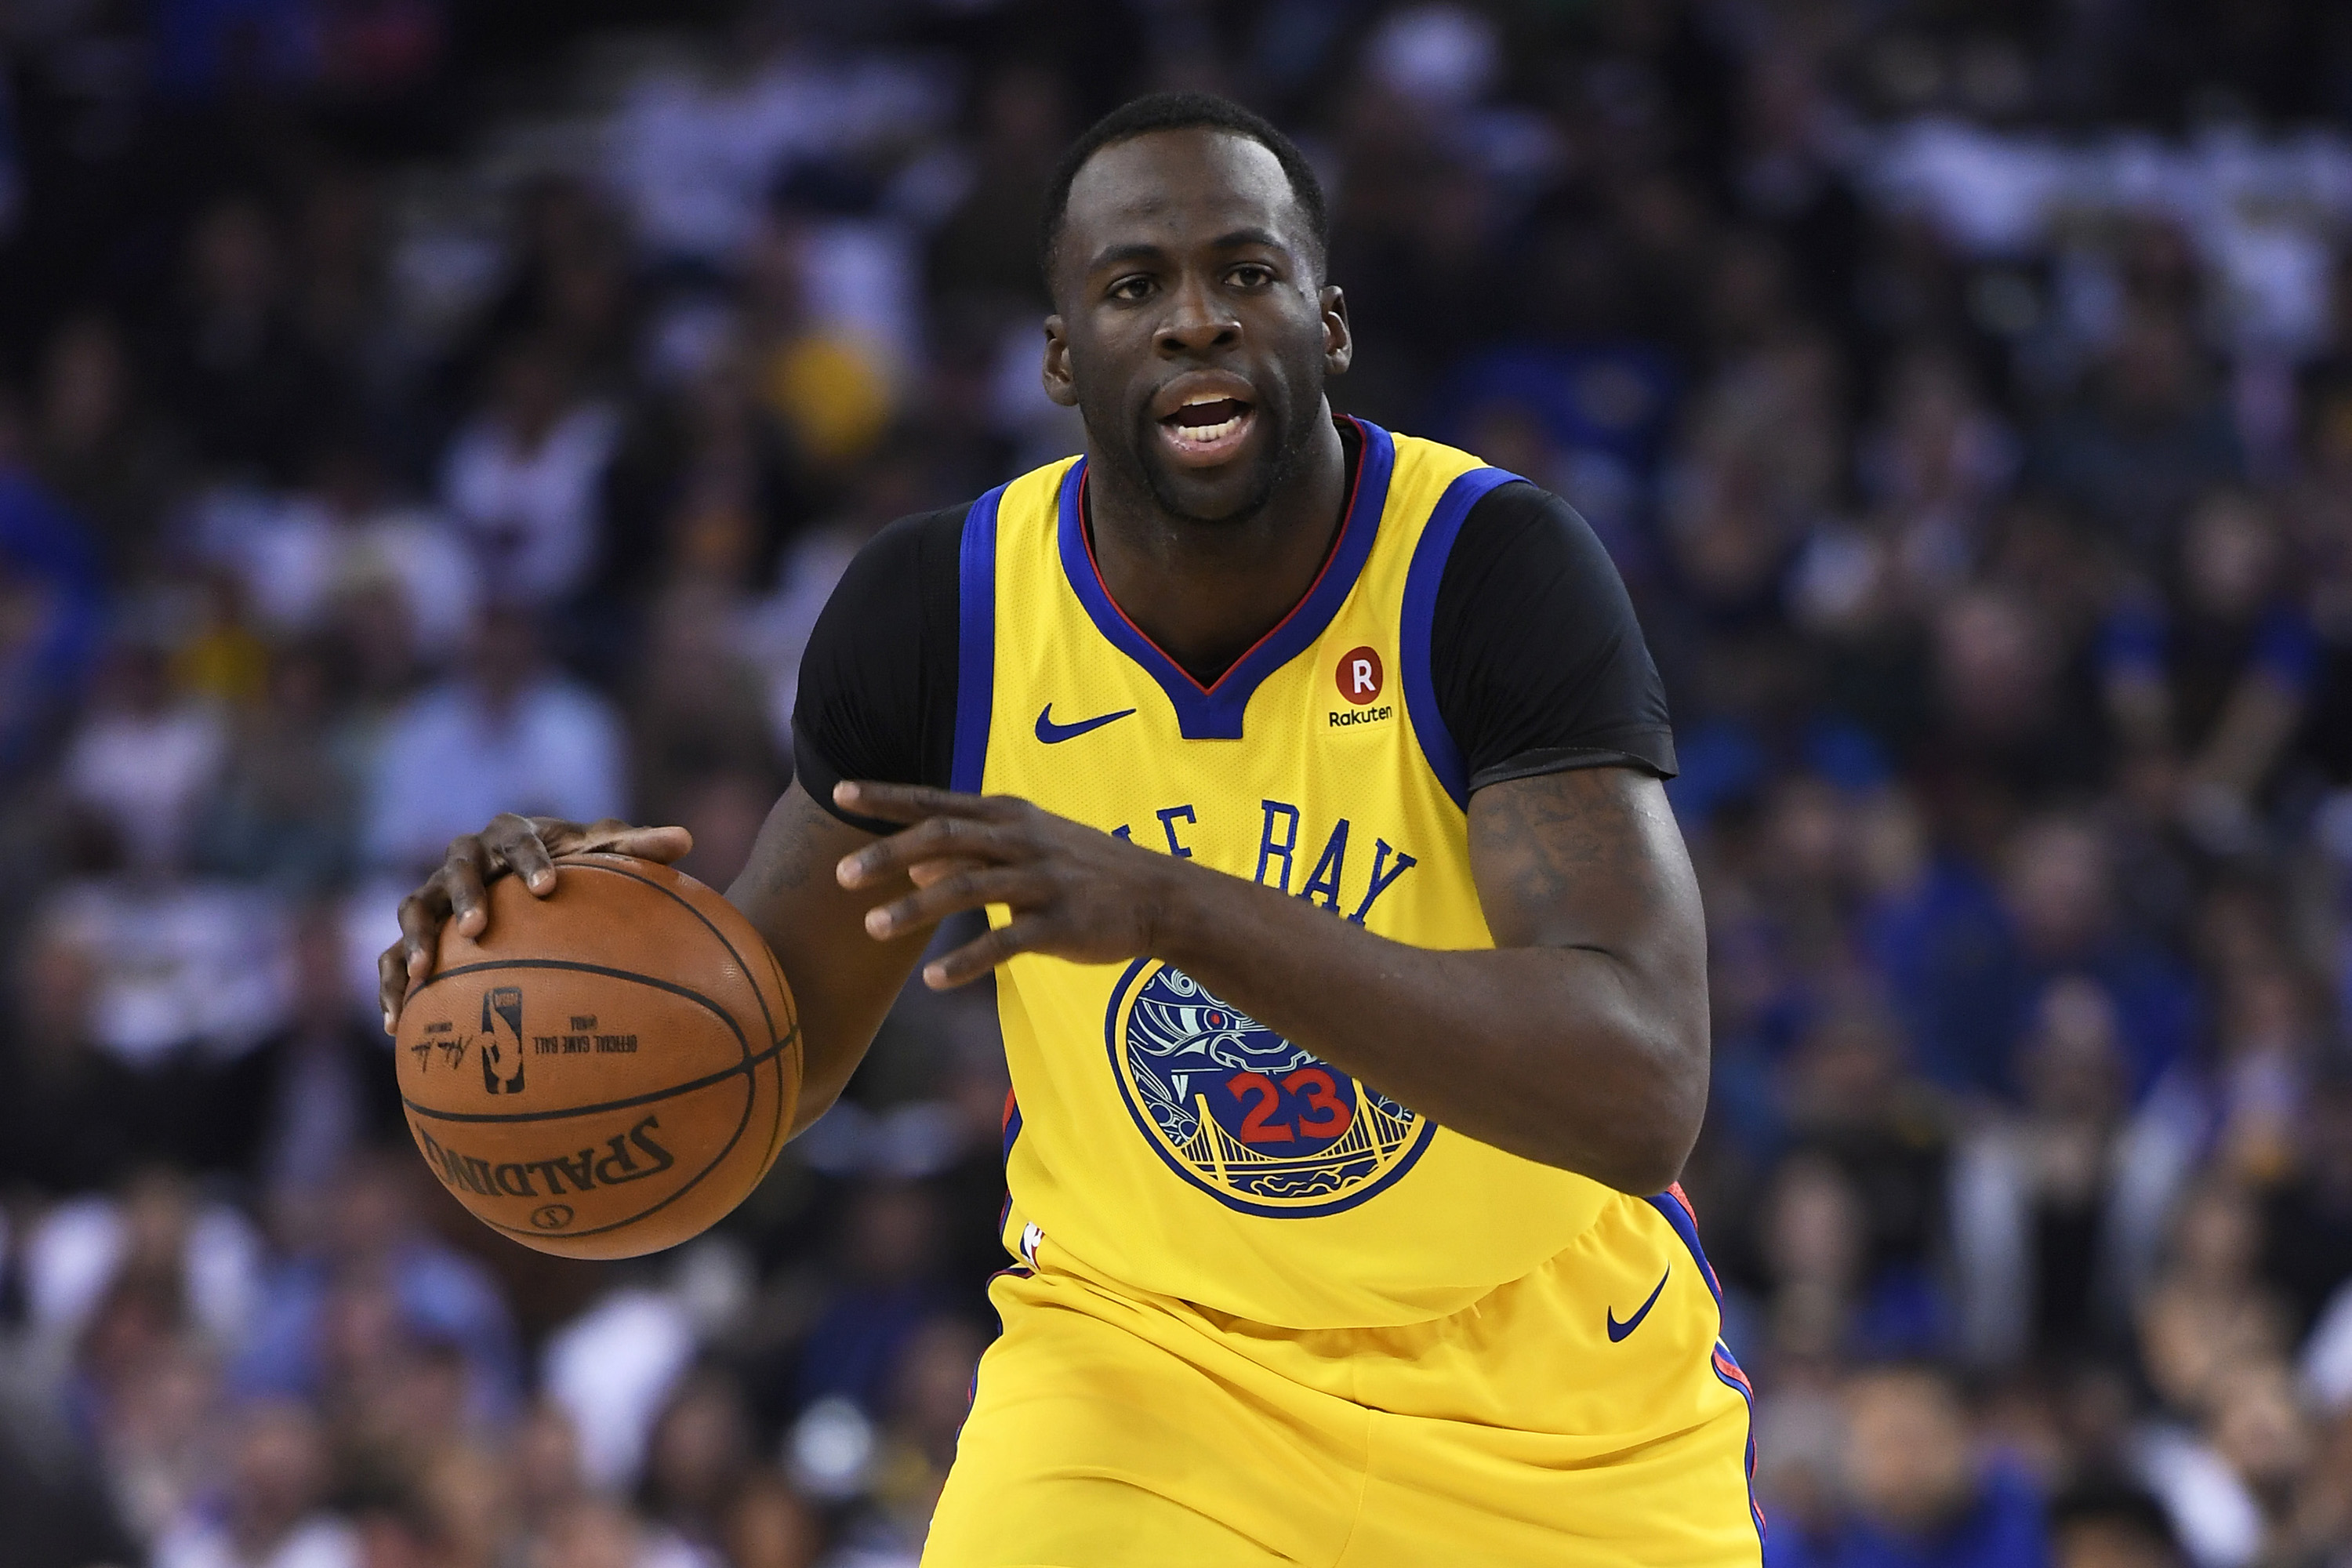 ea2d81f6ea87 Impact Player  How Draymond Green Makes Winning Plays